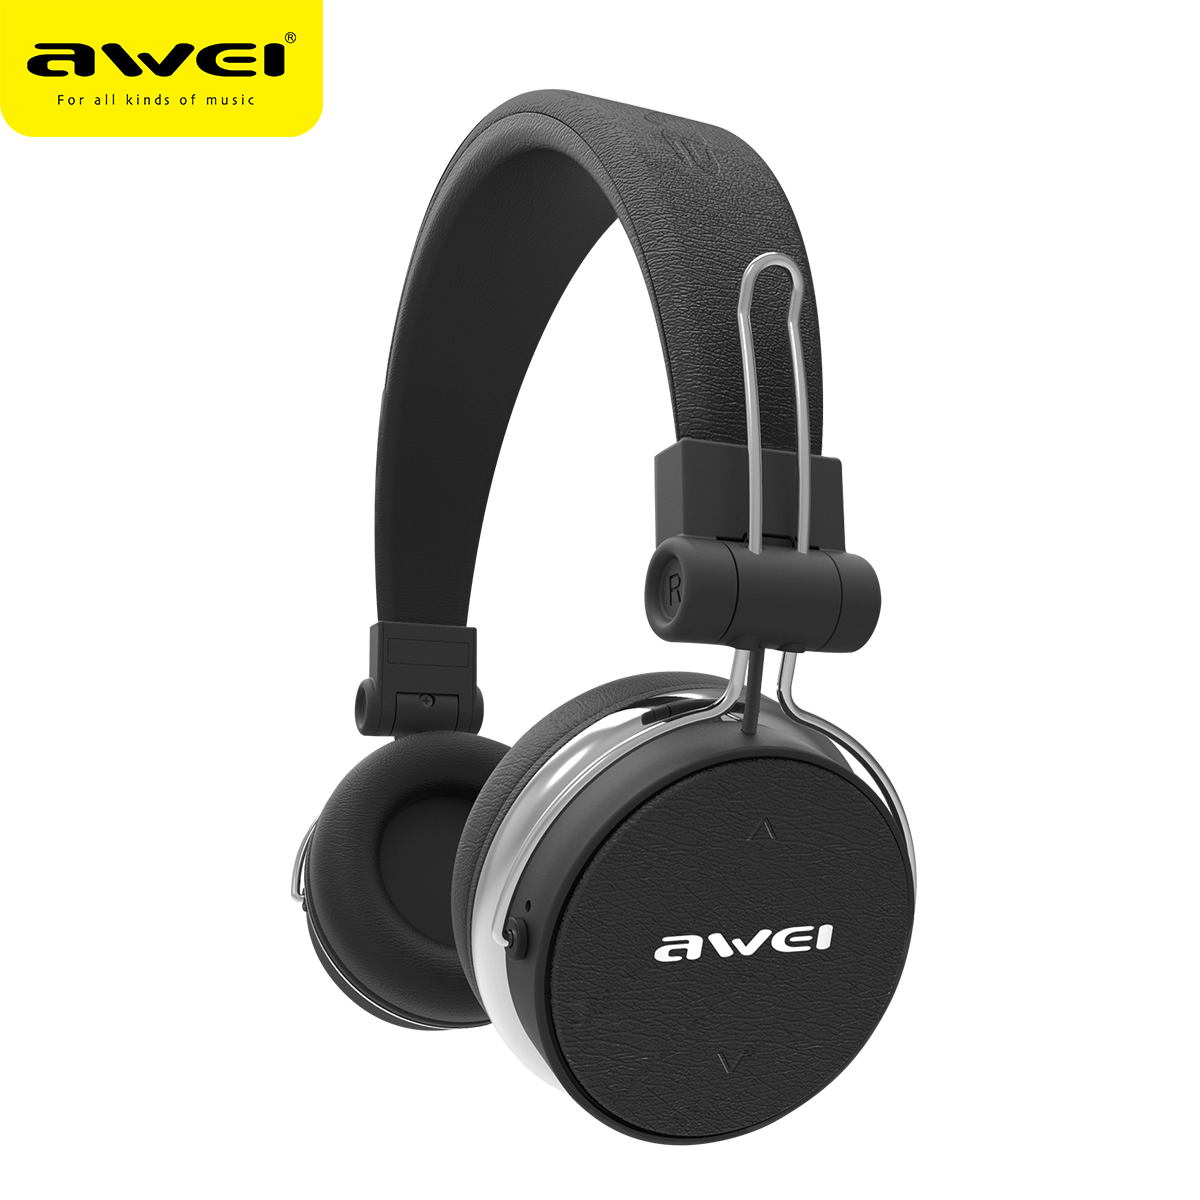 AWEI A700BL Bluetooth Headphone With Microphone Wireless Earphone Cordless Headset Casque Earpiece For Cellphone Stereo Kulakl k new 5kg brown sex products real skin feeling full silicone big ass butt with realistic vagina